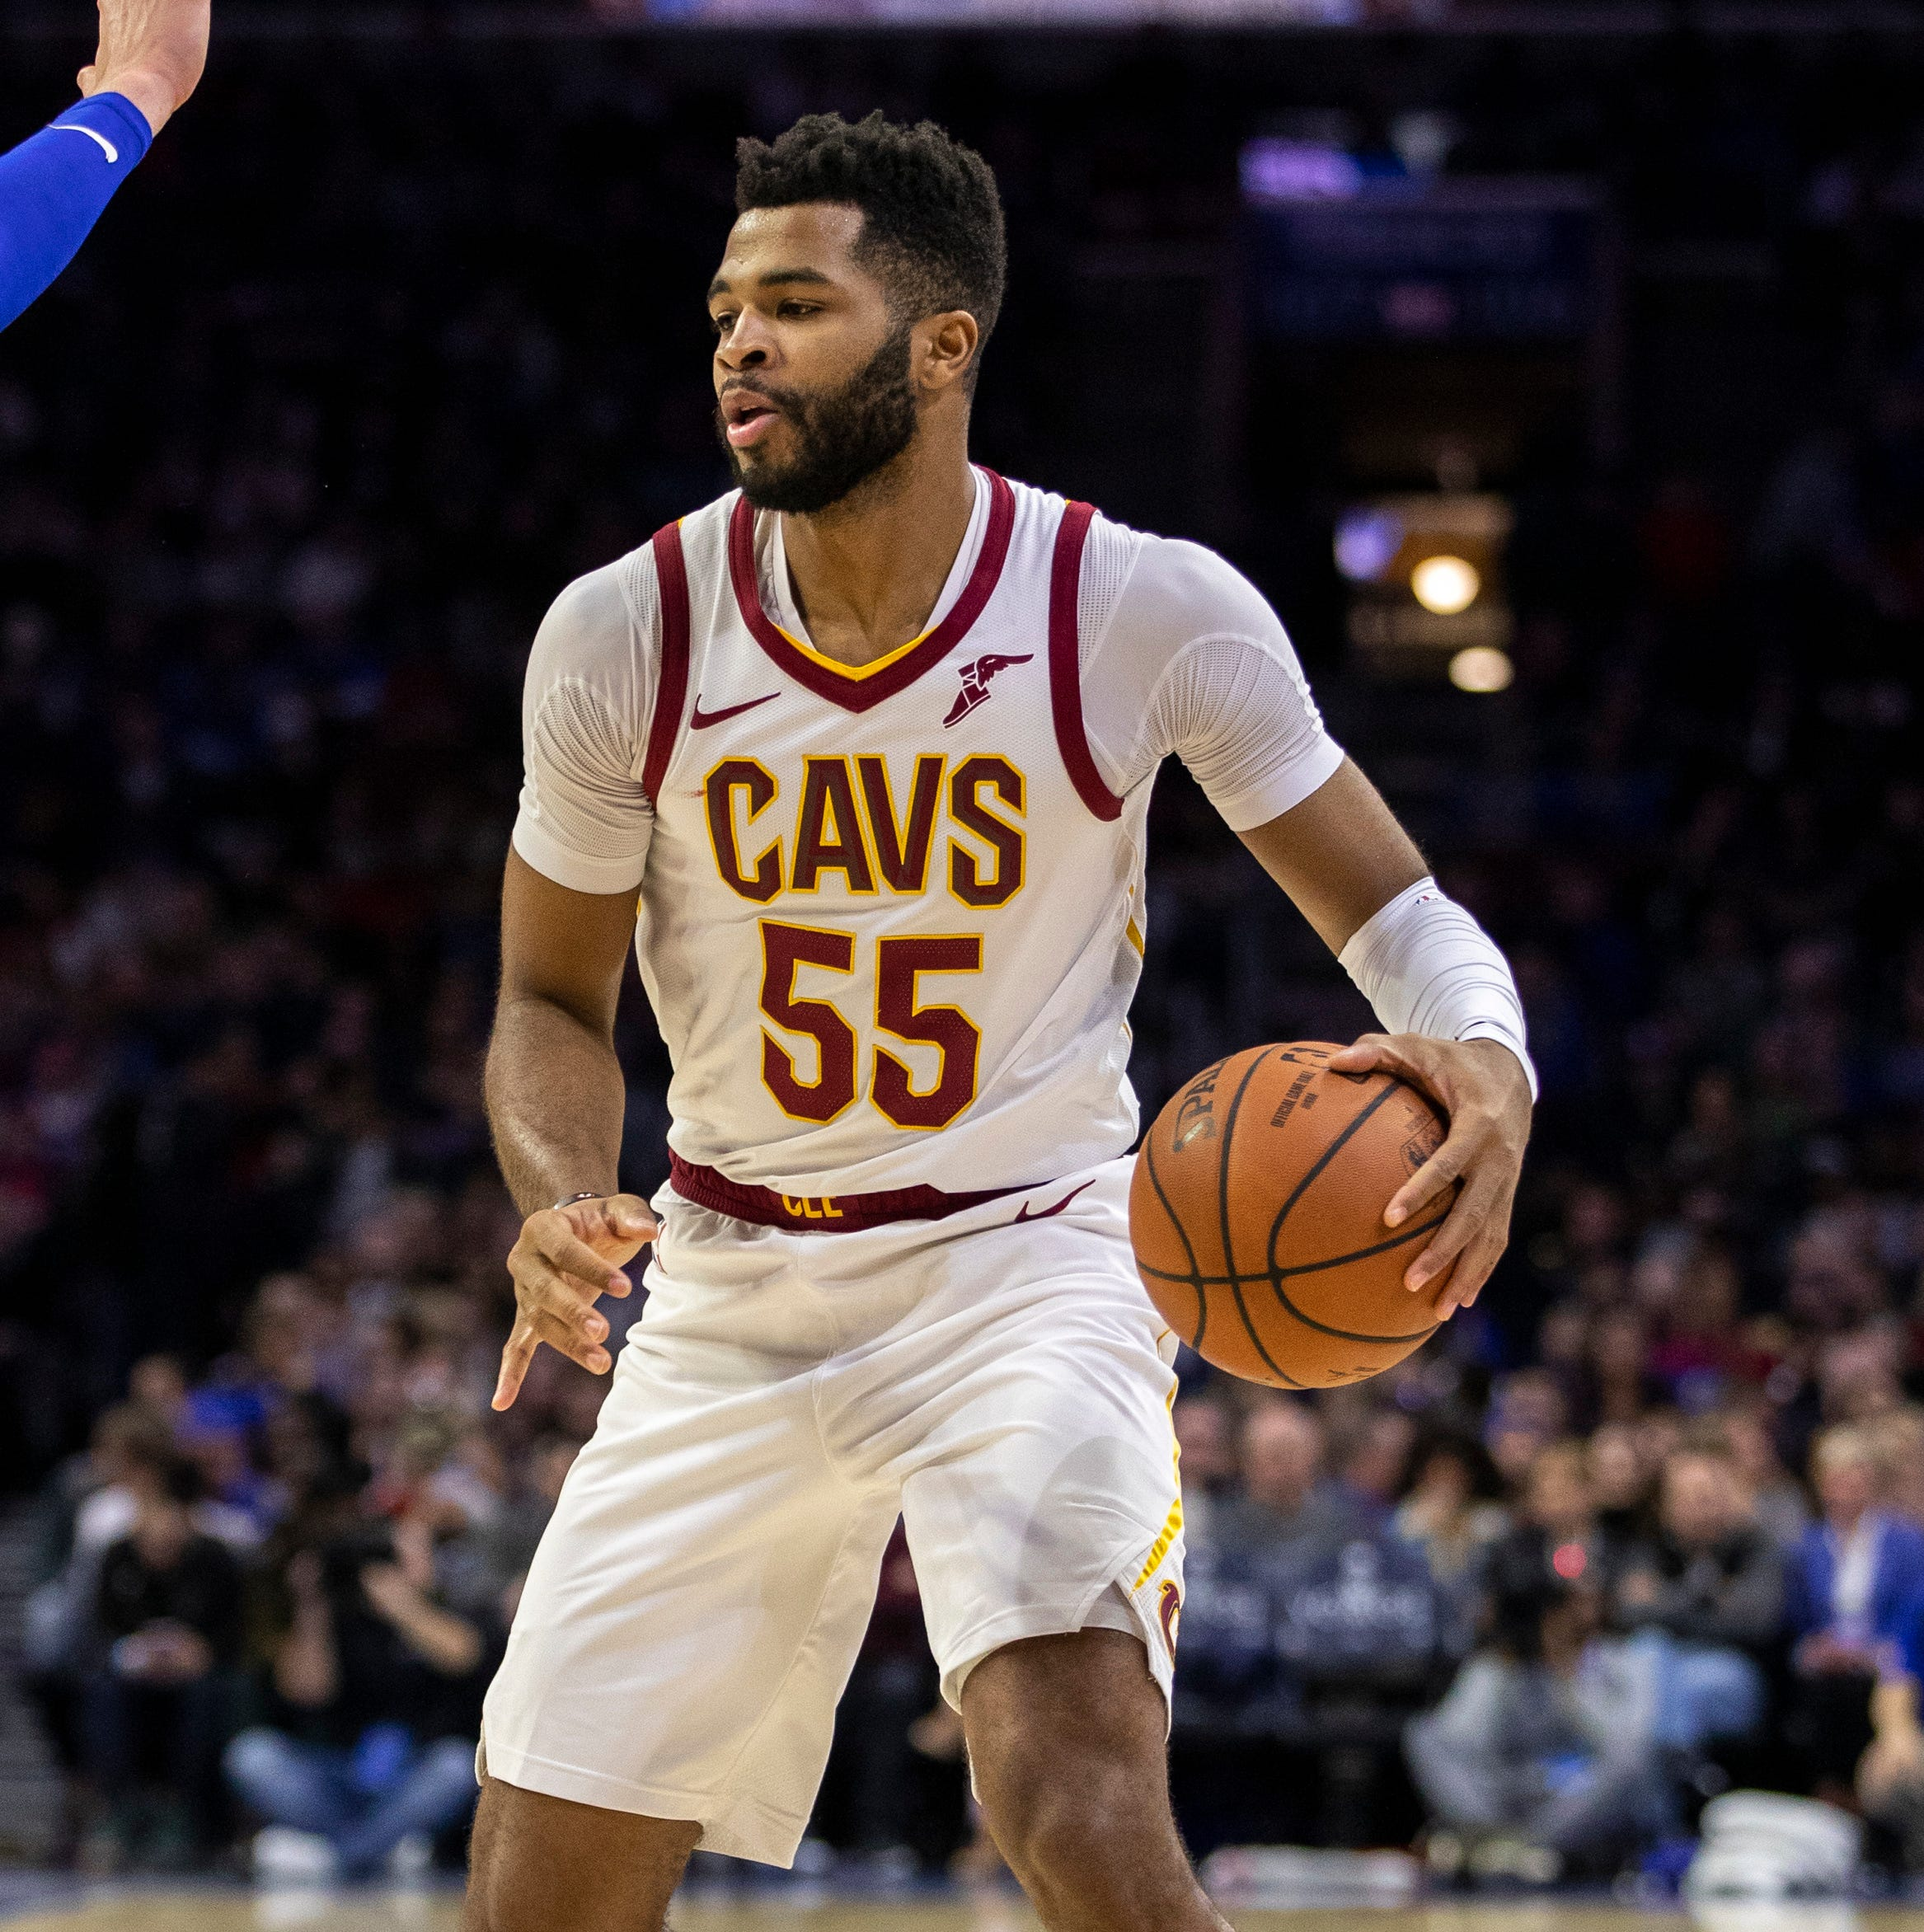 Andrew Harrison opens up about NBA life after the Grizzlies: 'It's hard, man'